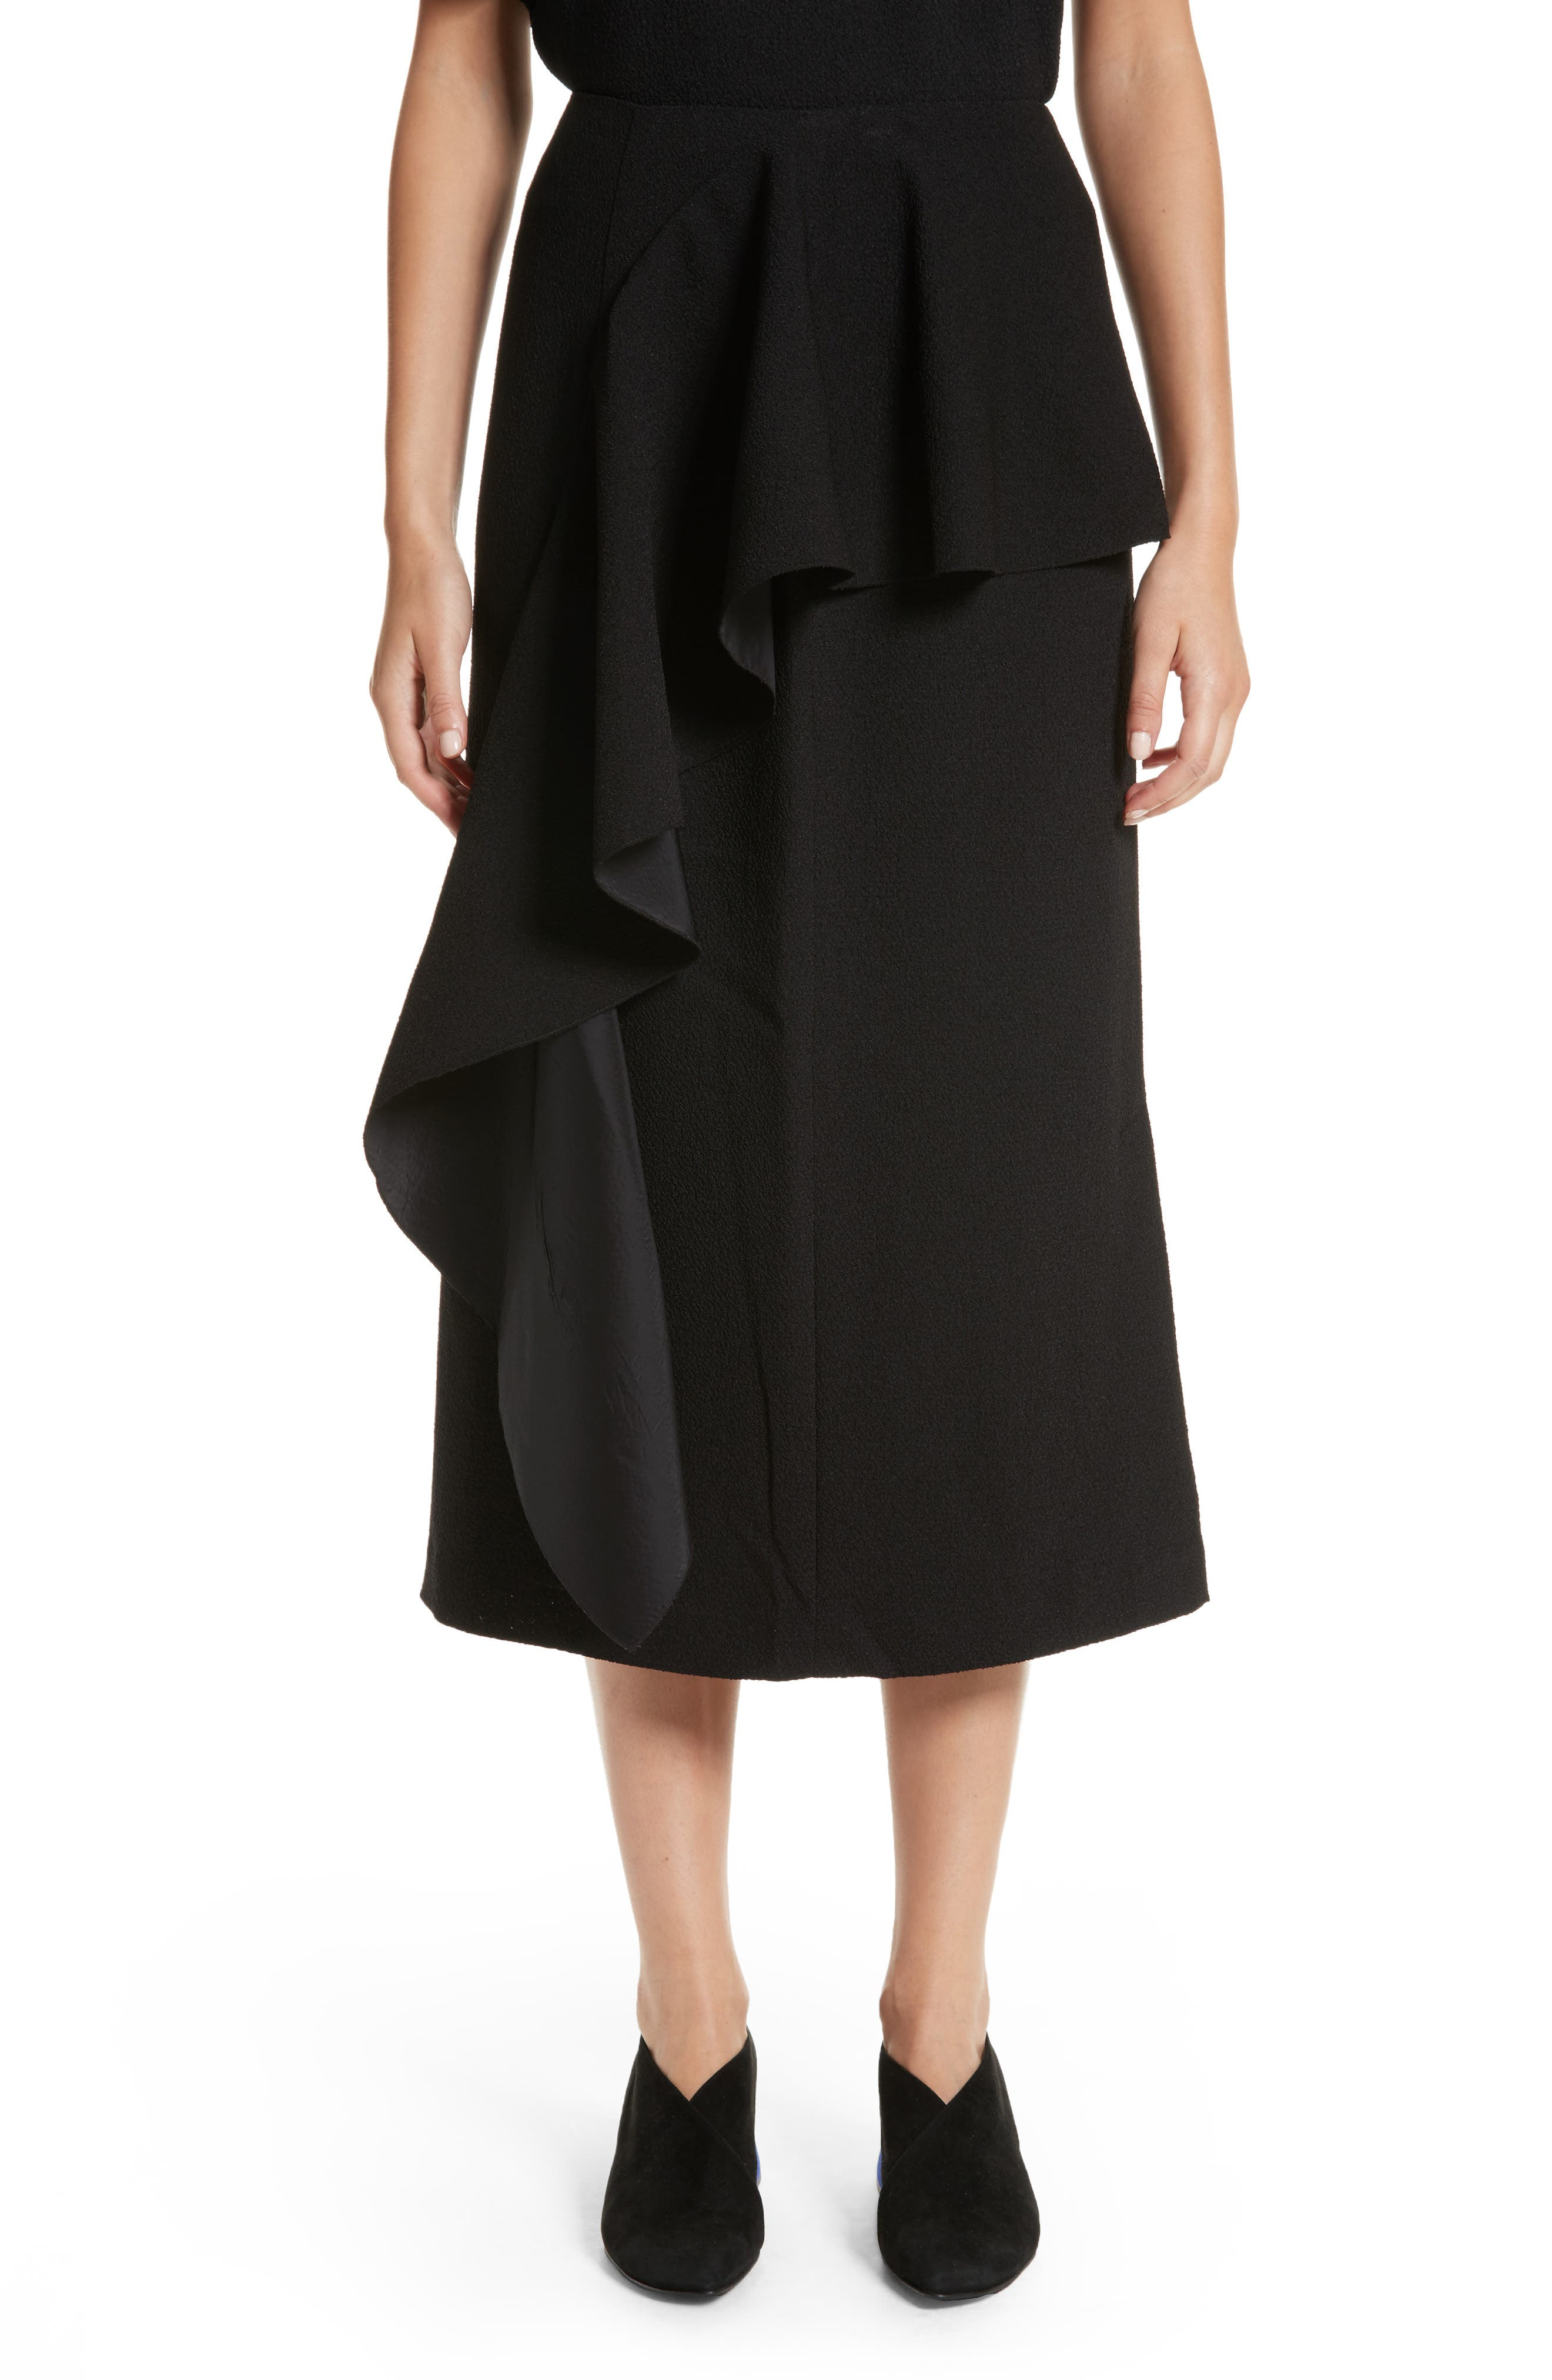 Alternate Image 1 Selected - Rejina Pyo Maude Ruffle Panel Crepe Skirt (Nordstrom Exclusive)